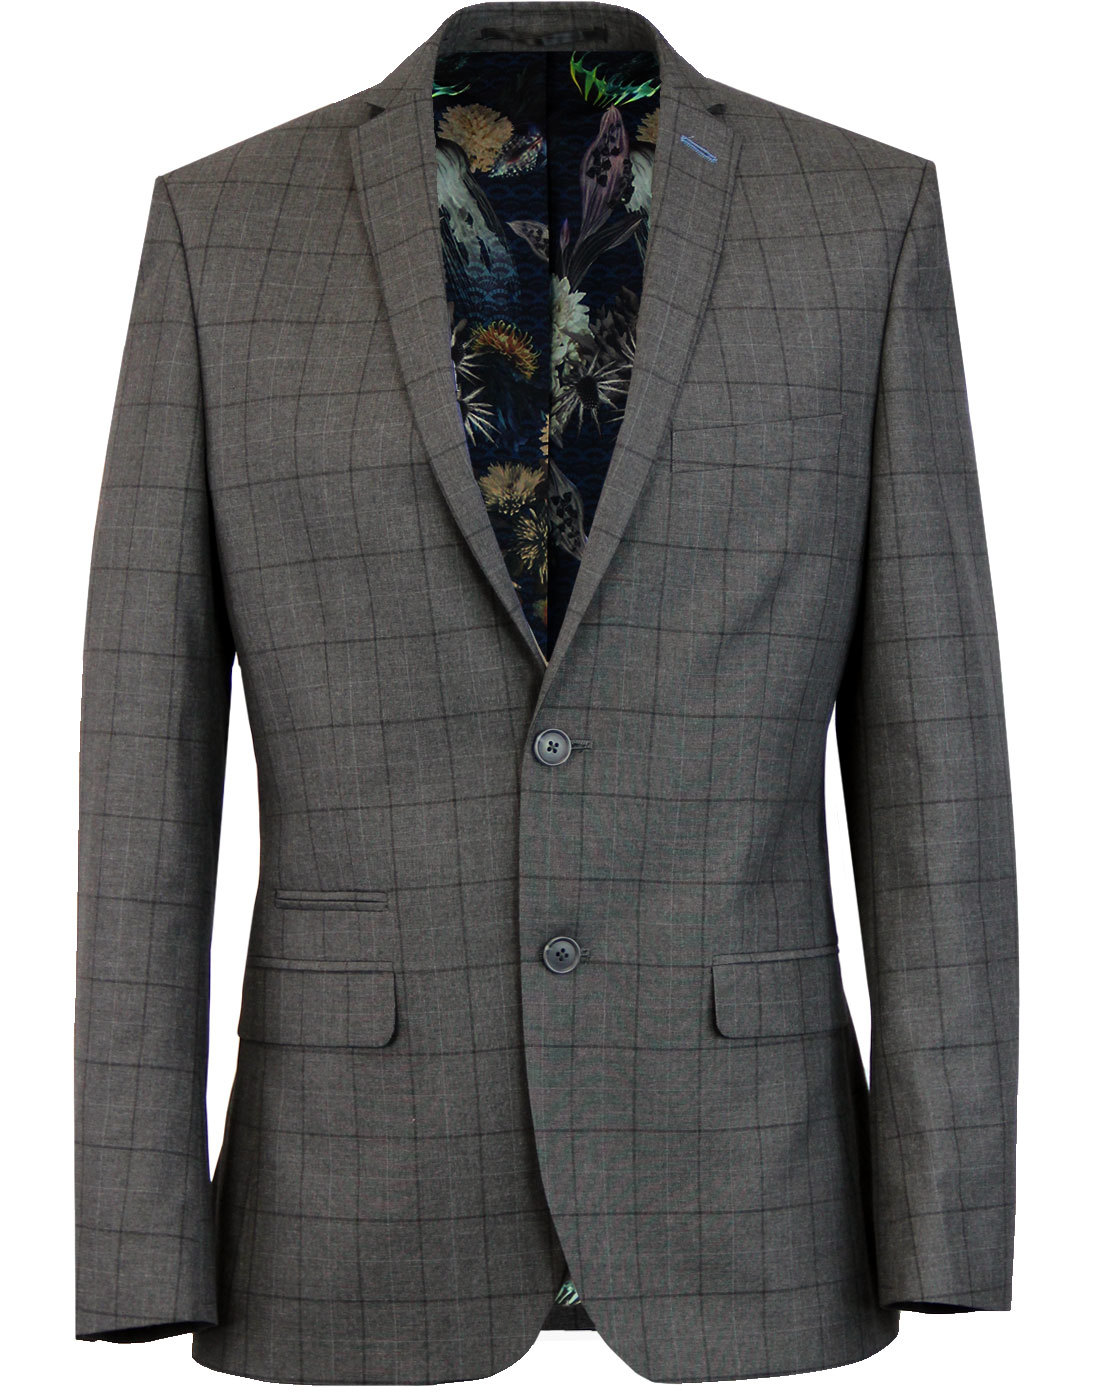 Retro Mod Windowpane Check 2 Button Suit Jacket